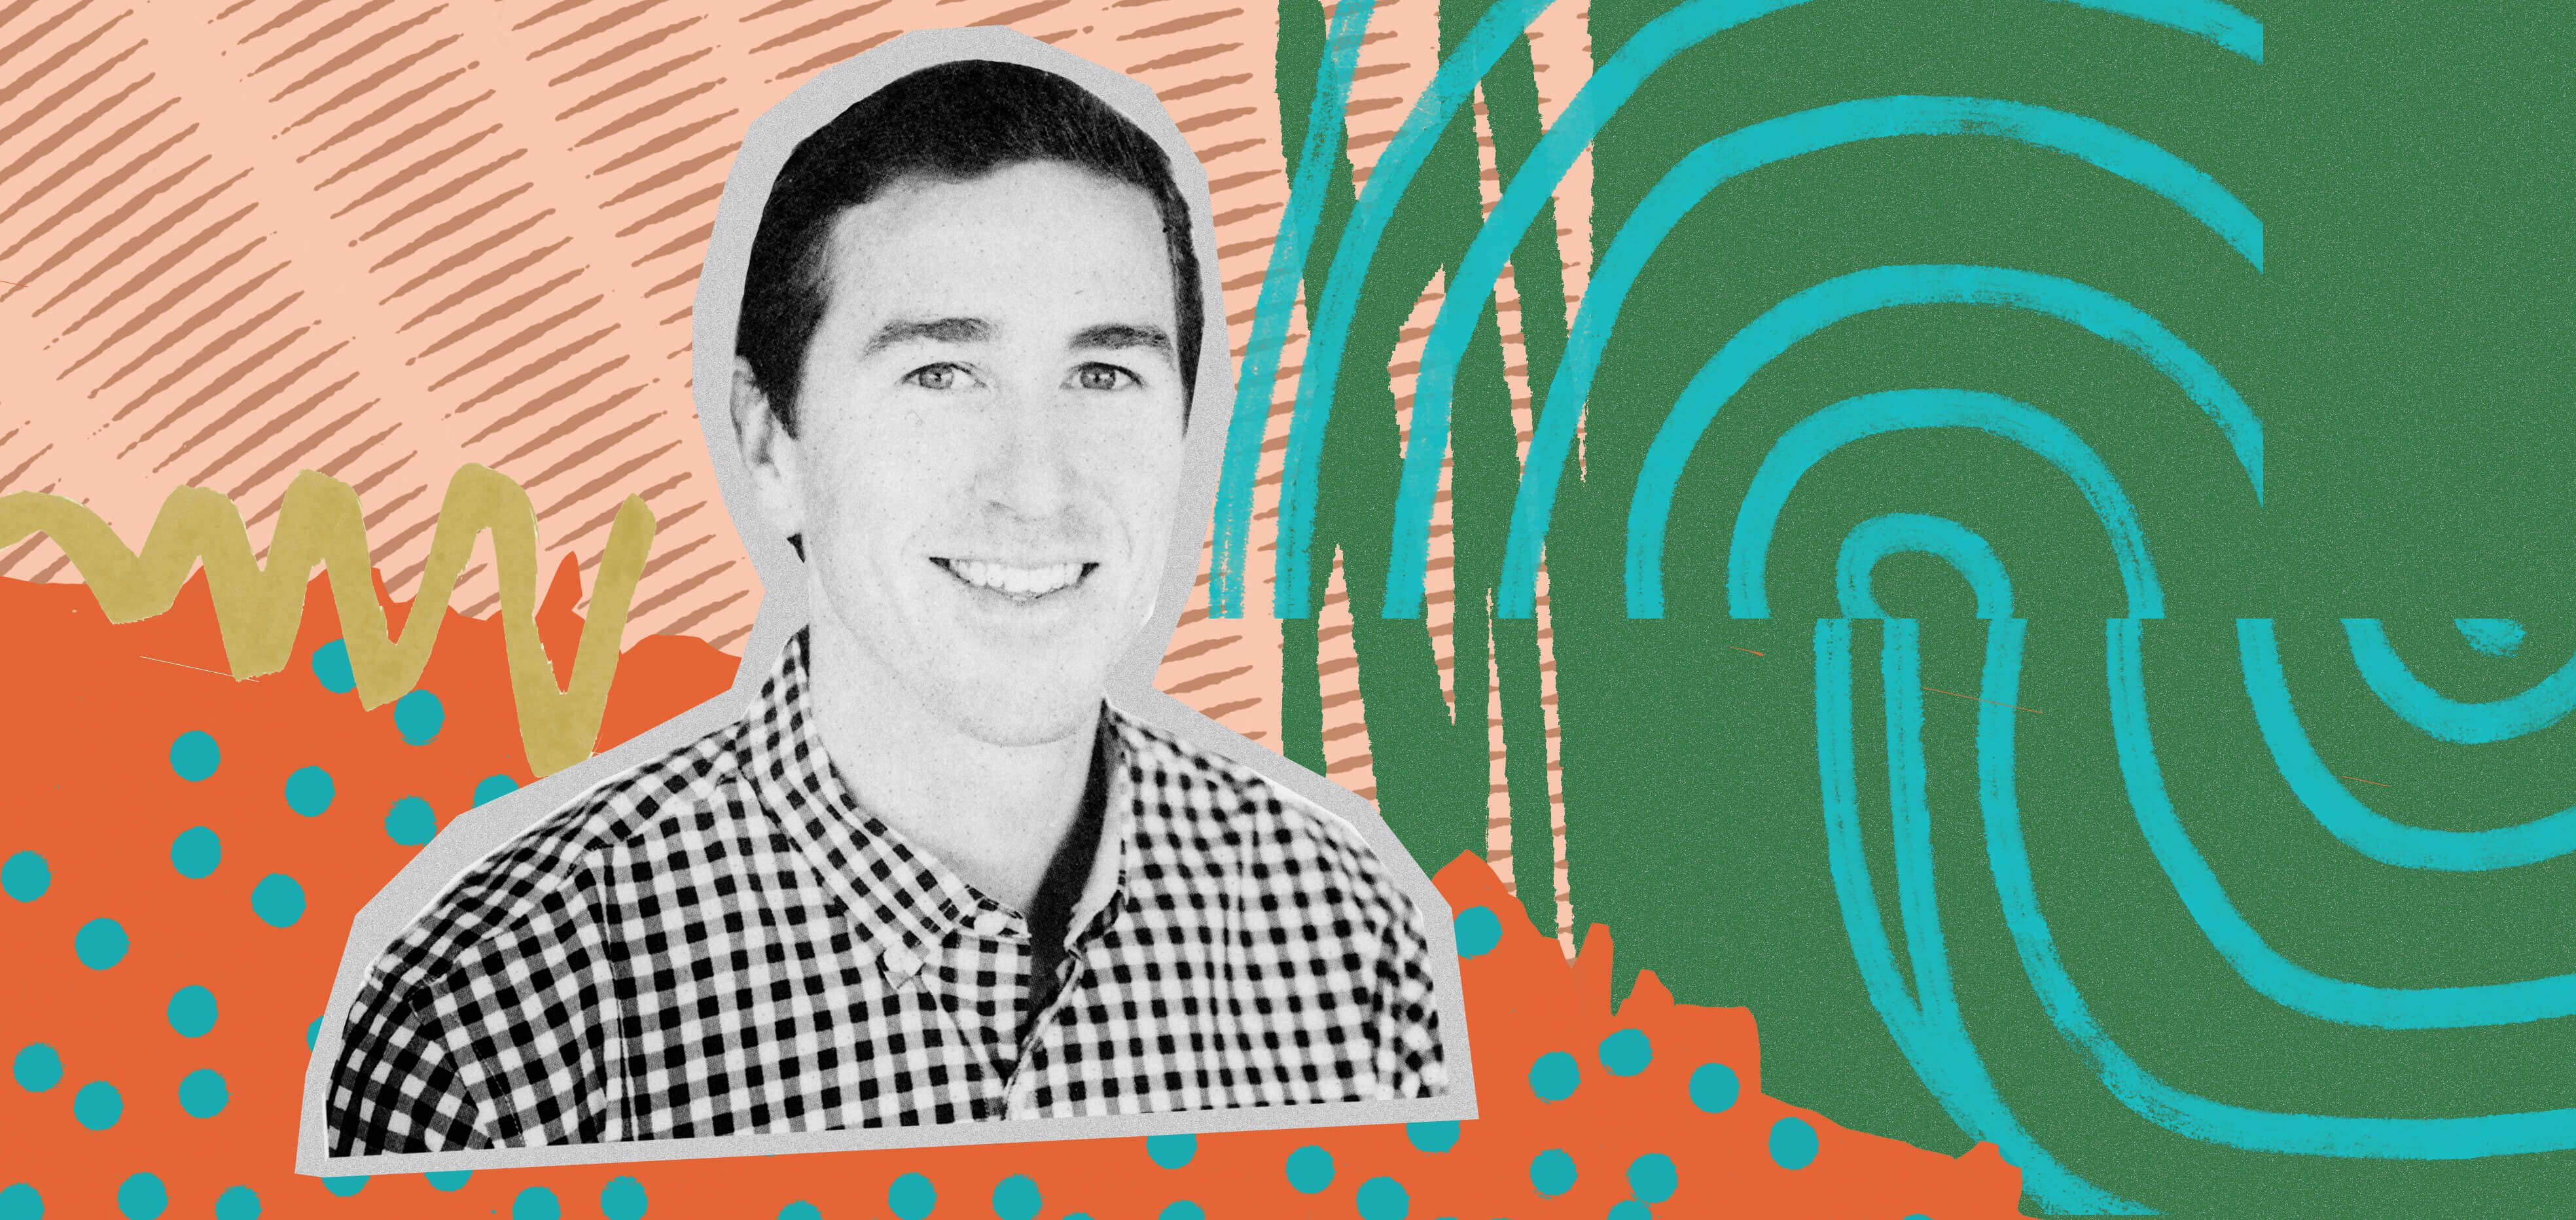 Eventbrite's Brian Rothenberg on growing a marketplace